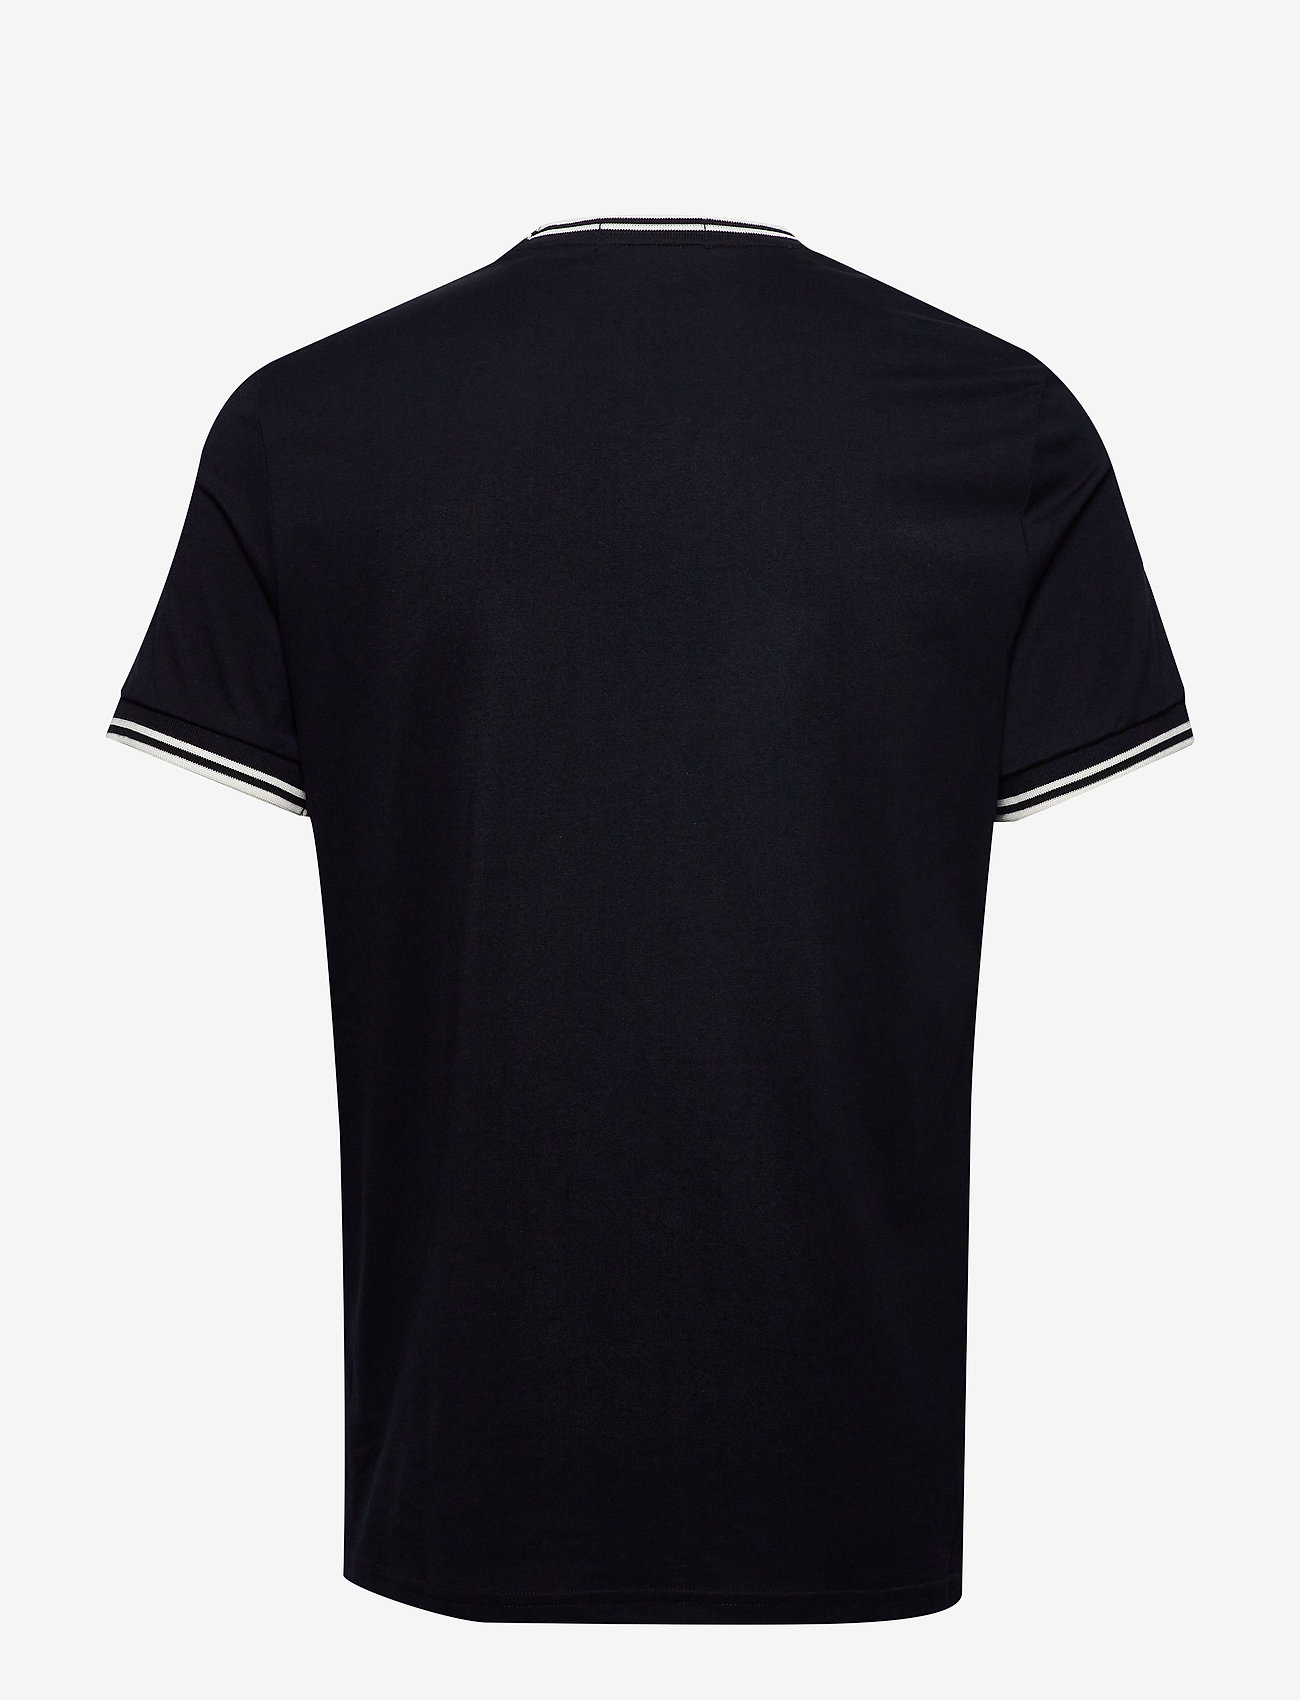 Fred Perry TWIN TIPPED T-SHIRT - T-skjorter NAVY - Menn Klær